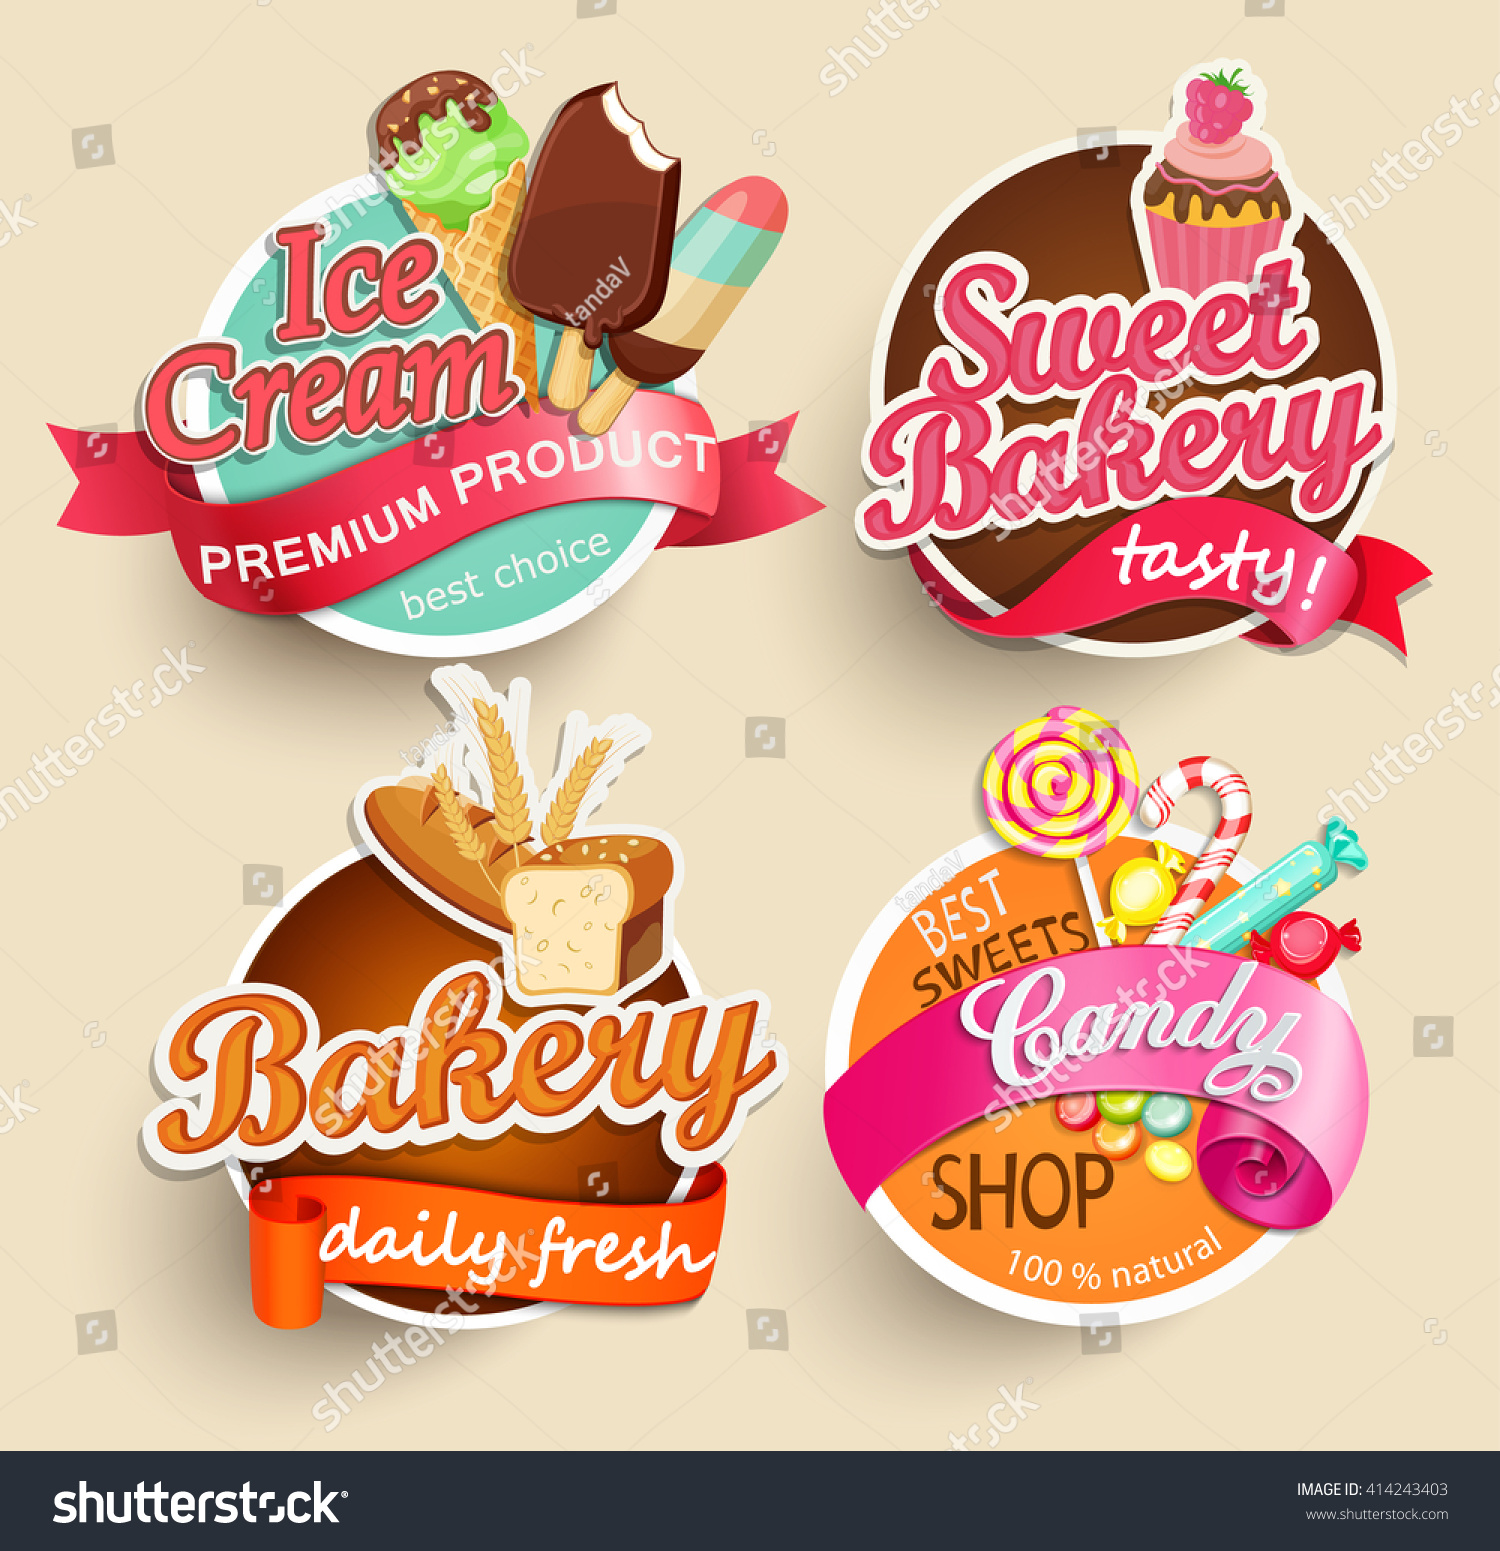 food label sticker bakery ice cream stock vector 414243403. Black Bedroom Furniture Sets. Home Design Ideas